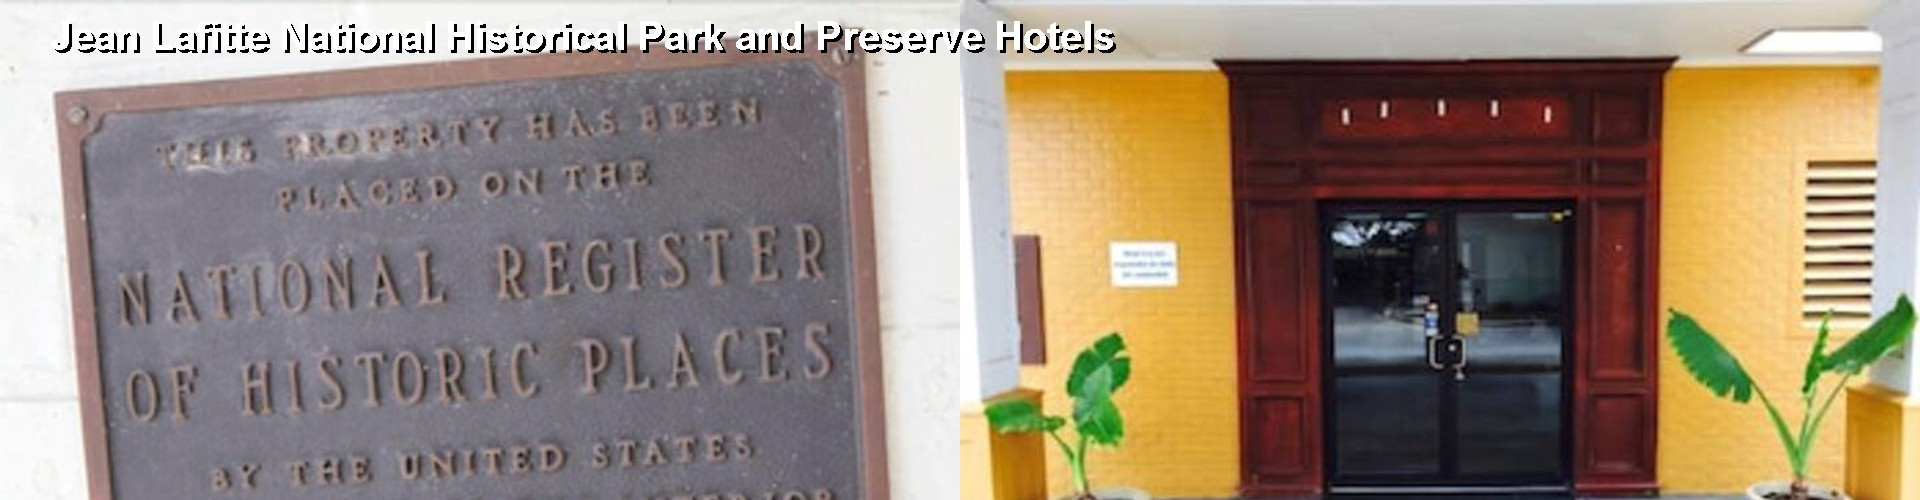 5 Best Hotels near Jean Lafitte National Historical Park and Preserve